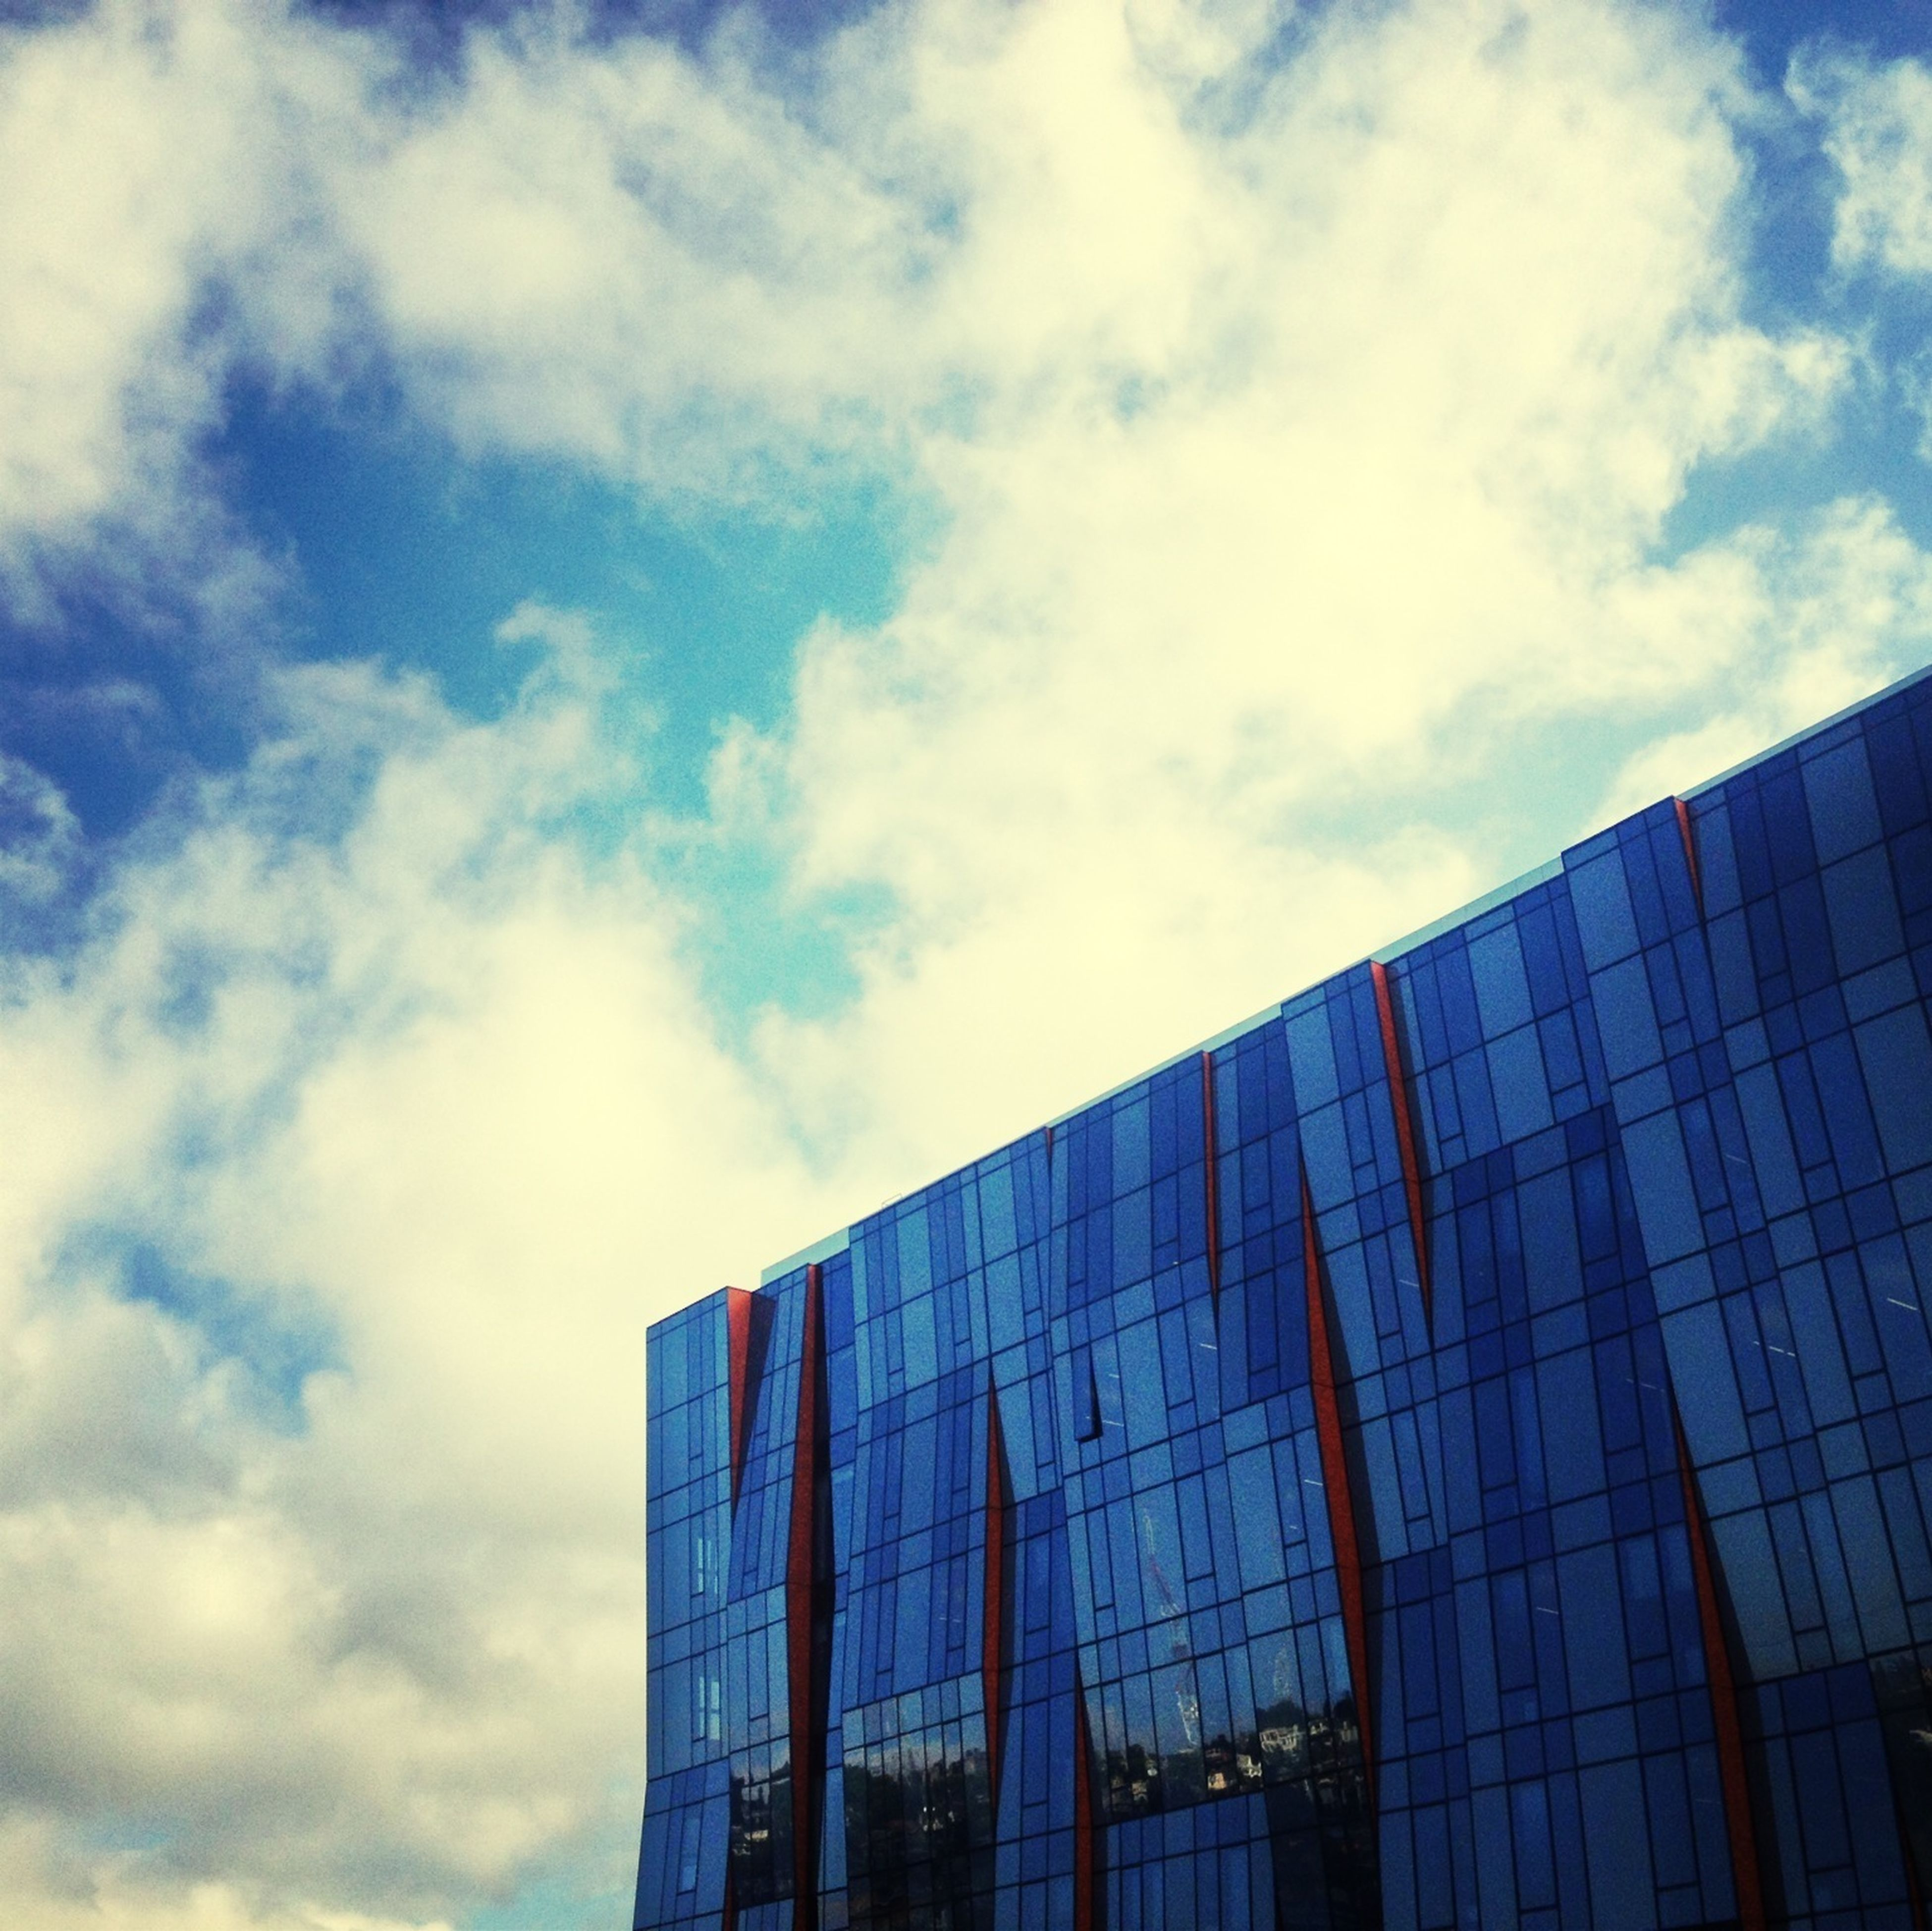 building exterior, architecture, built structure, low angle view, modern, office building, sky, city, glass - material, reflection, skyscraper, cloud - sky, building, tall - high, blue, cloud, window, day, tower, outdoors